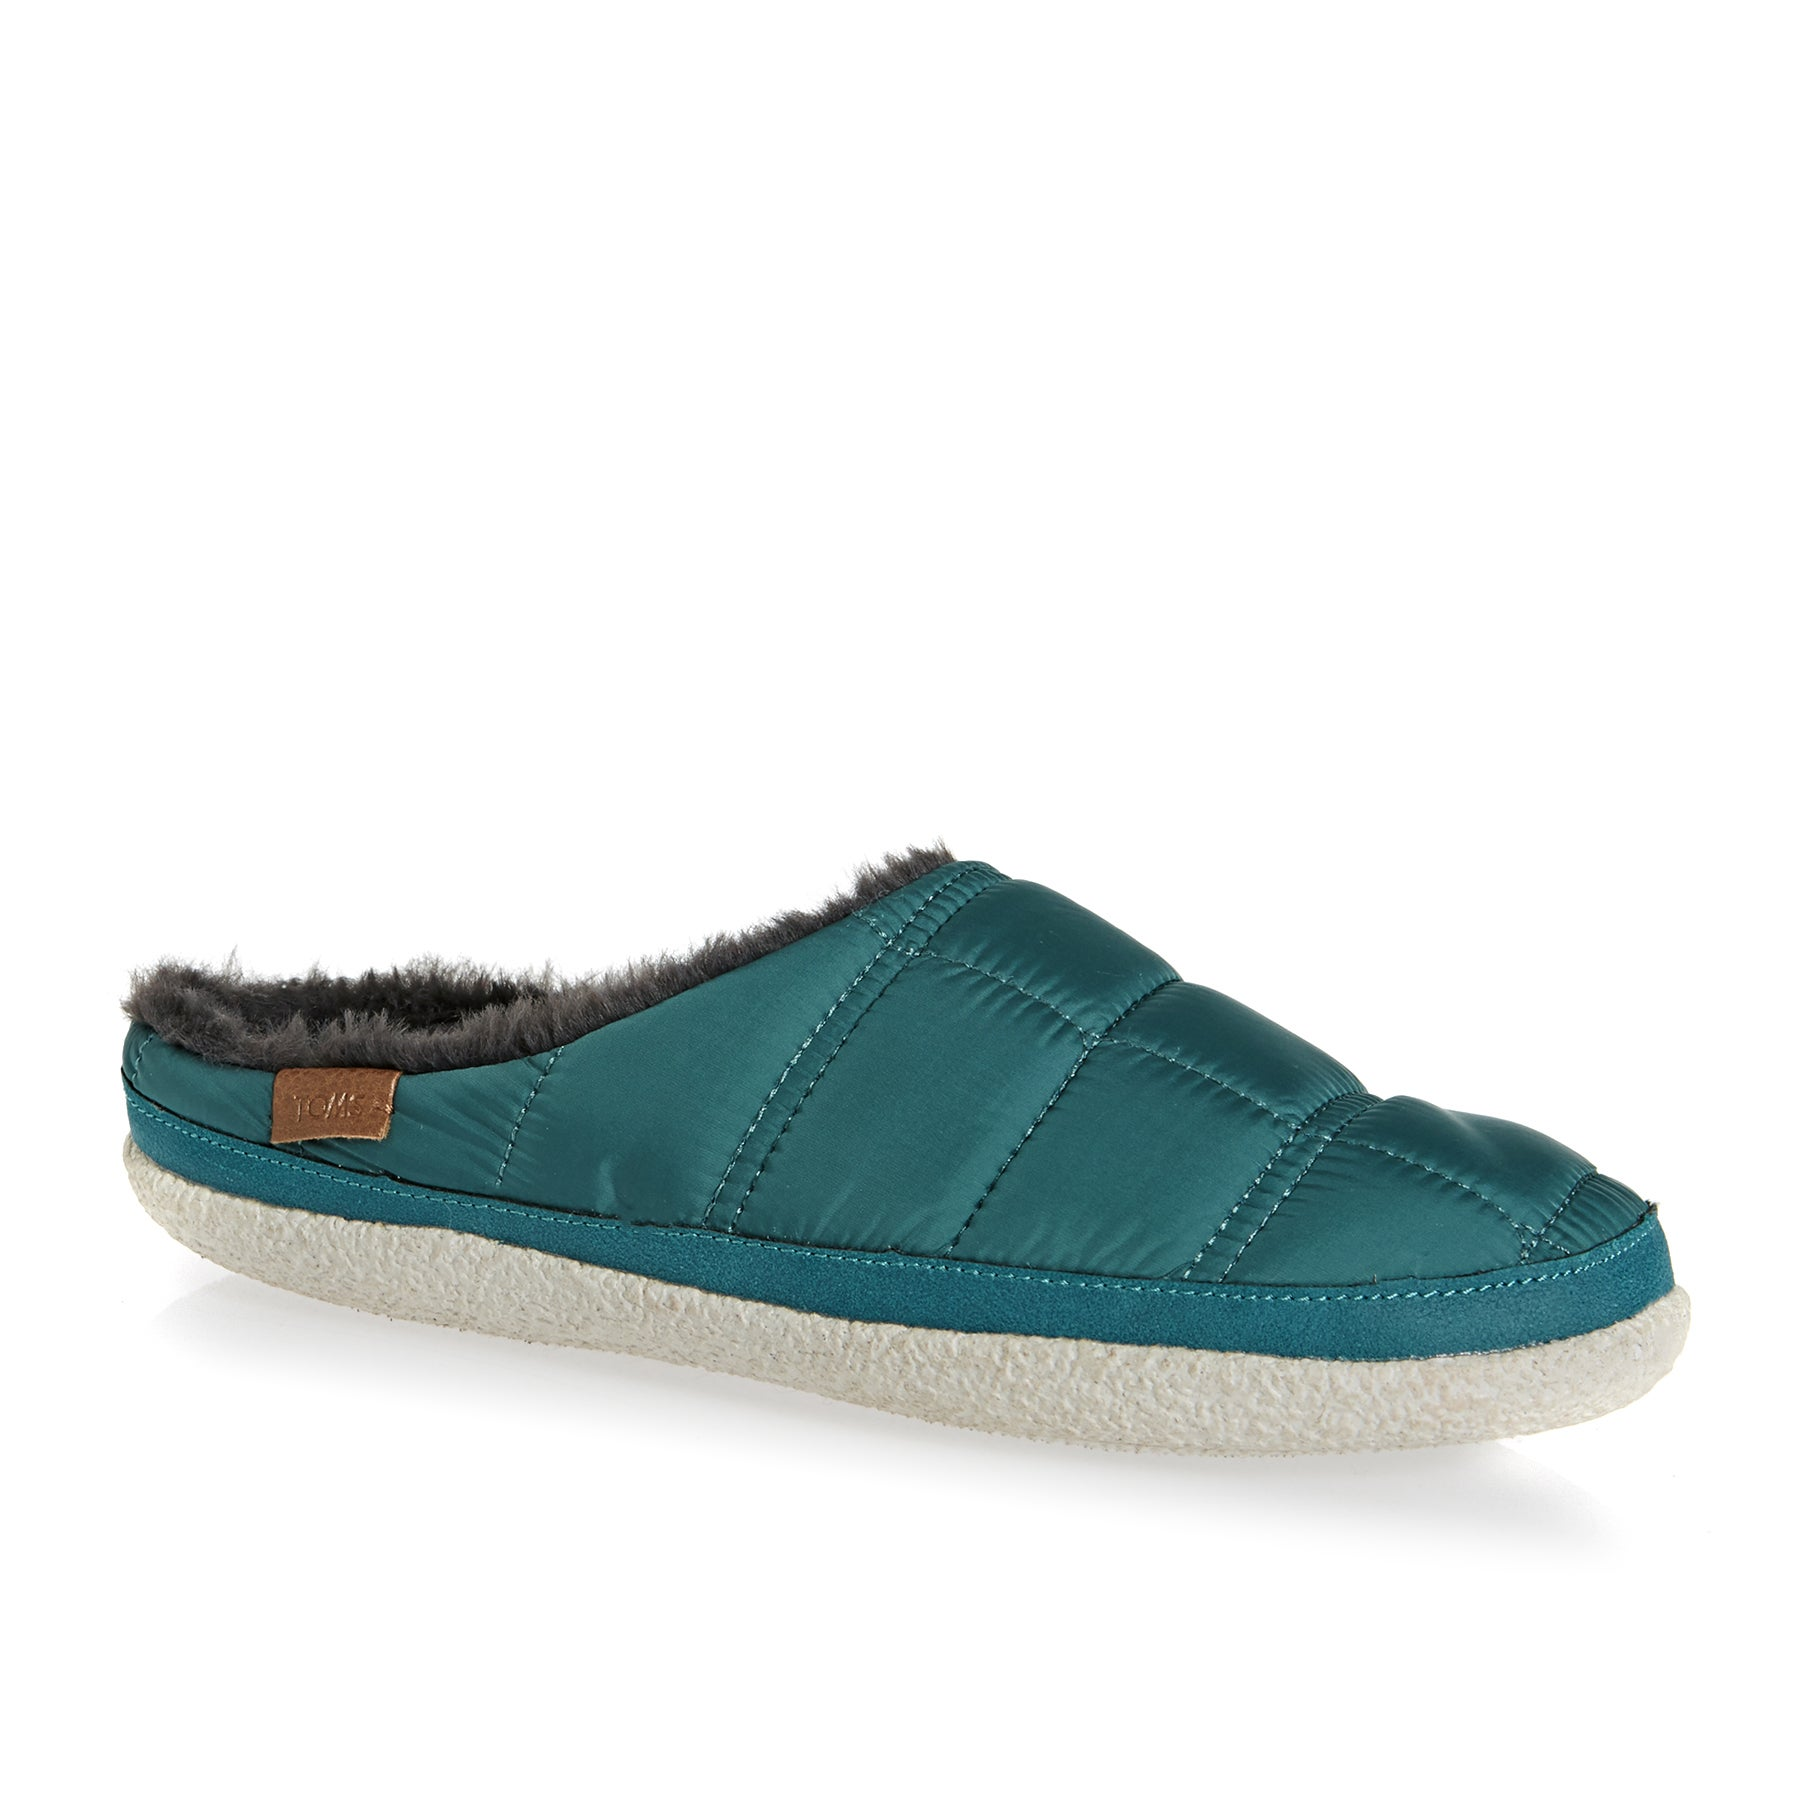 Toms Ivy Womens Slippers - Stellar Blue Quilted